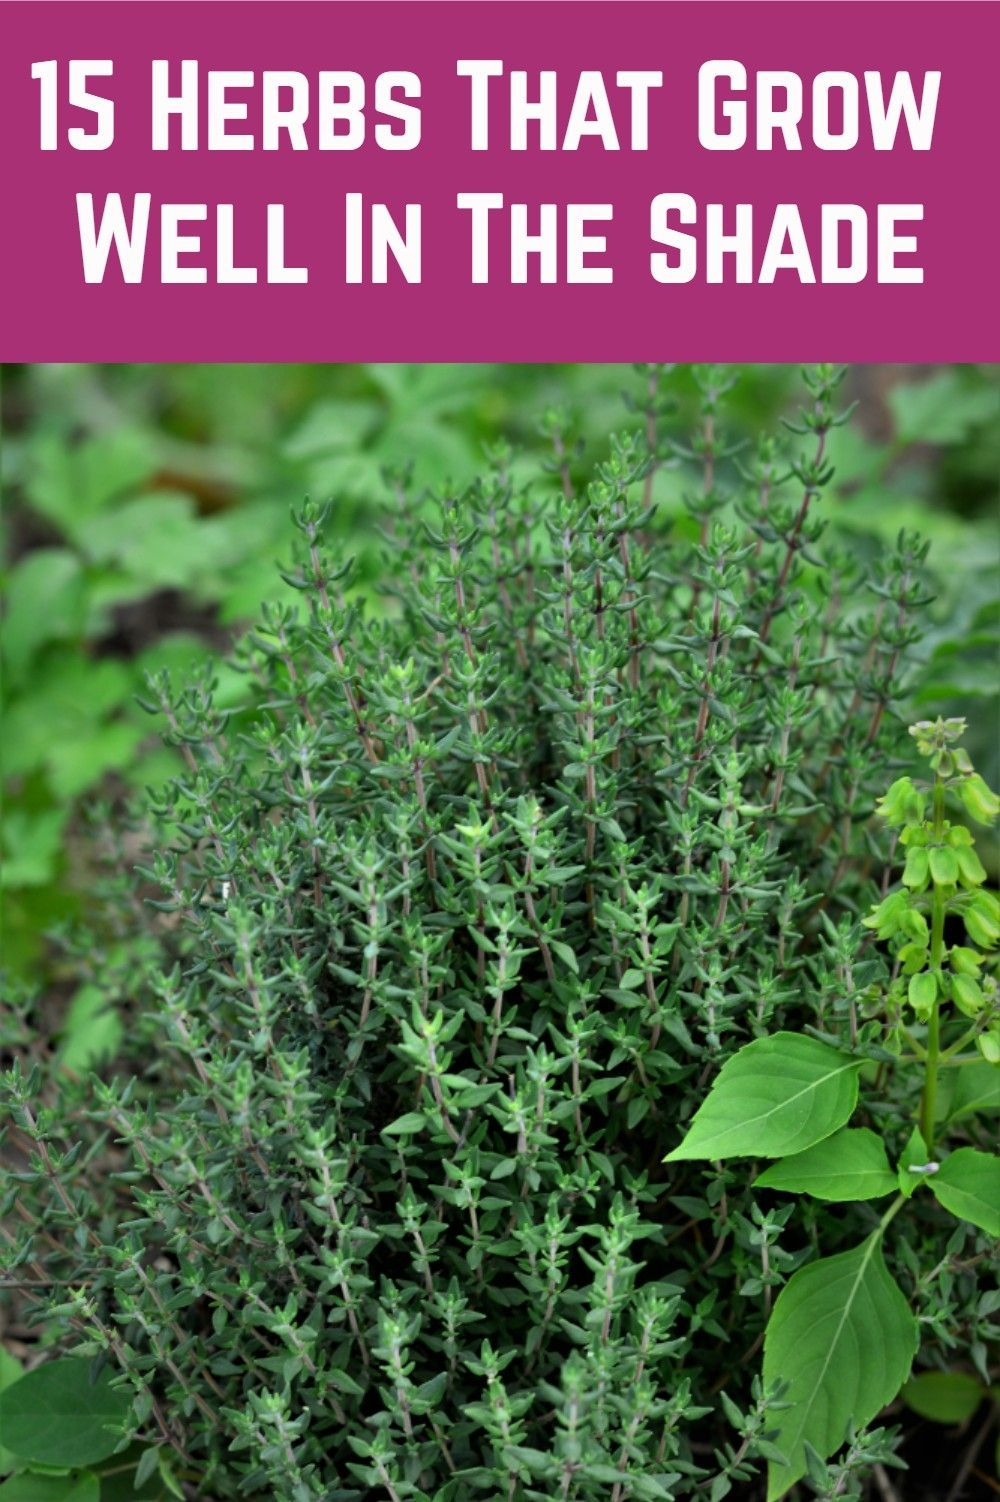 15 Herbs That Grow Well In The Shade is part of Herb garden design, Herbs, Veg garden, Garden yard ideas, Shade tolerant plants, Shade garden - Got a shady spot in your garden  These herbs thrive in shady spots so none of your garden has to go to waste